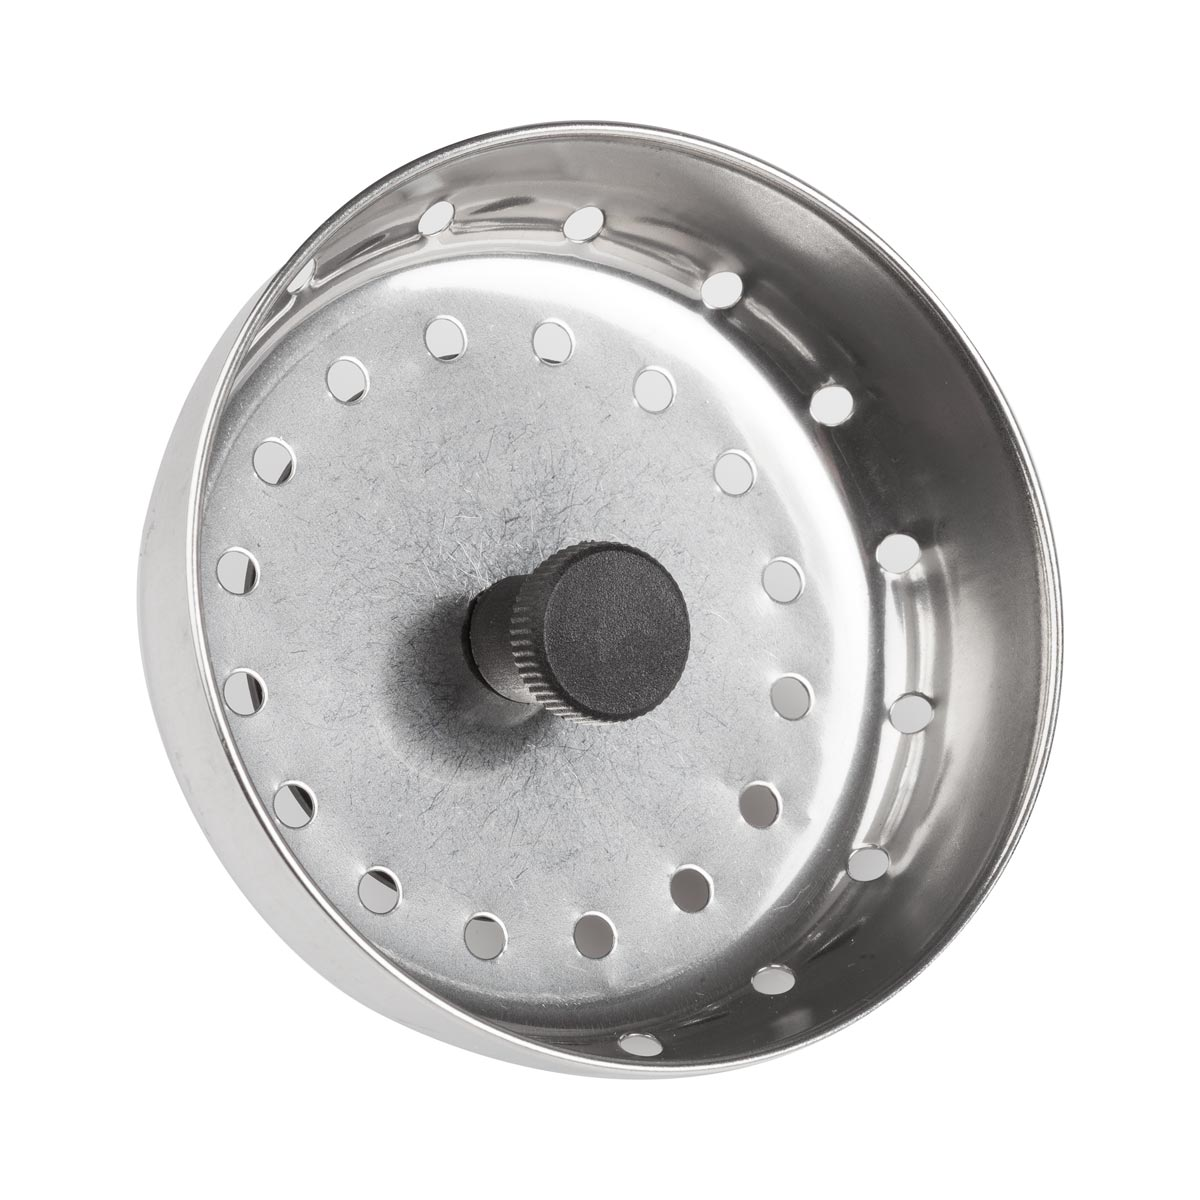 "Click here to buy 3"" Diameter Stainless Steel Sink Strainer with Stopper by Winco."